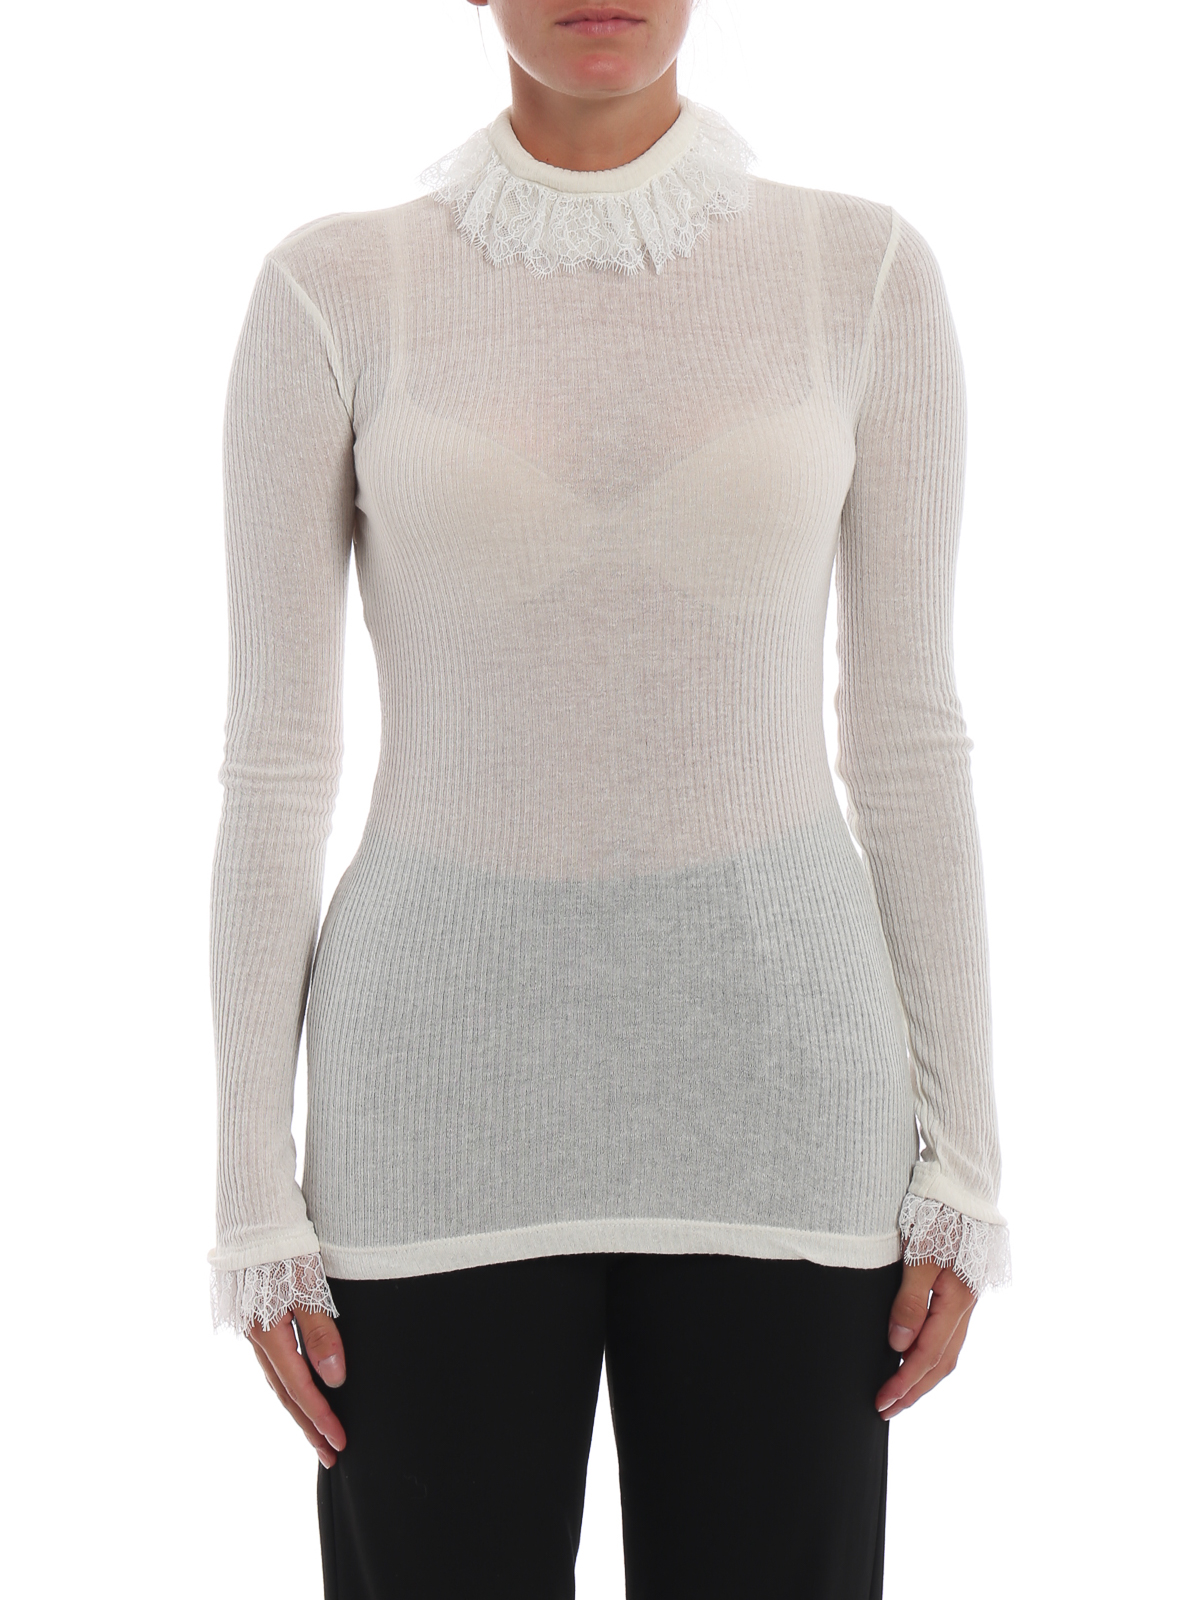 7c2f2b3f00fe60 iKRIX-philosophy-di-lorenzo-serafini-turtlenecks--polo-necks-lace-ruched-white-wool-blend-turtleneck-00000142653f00s013.jpg